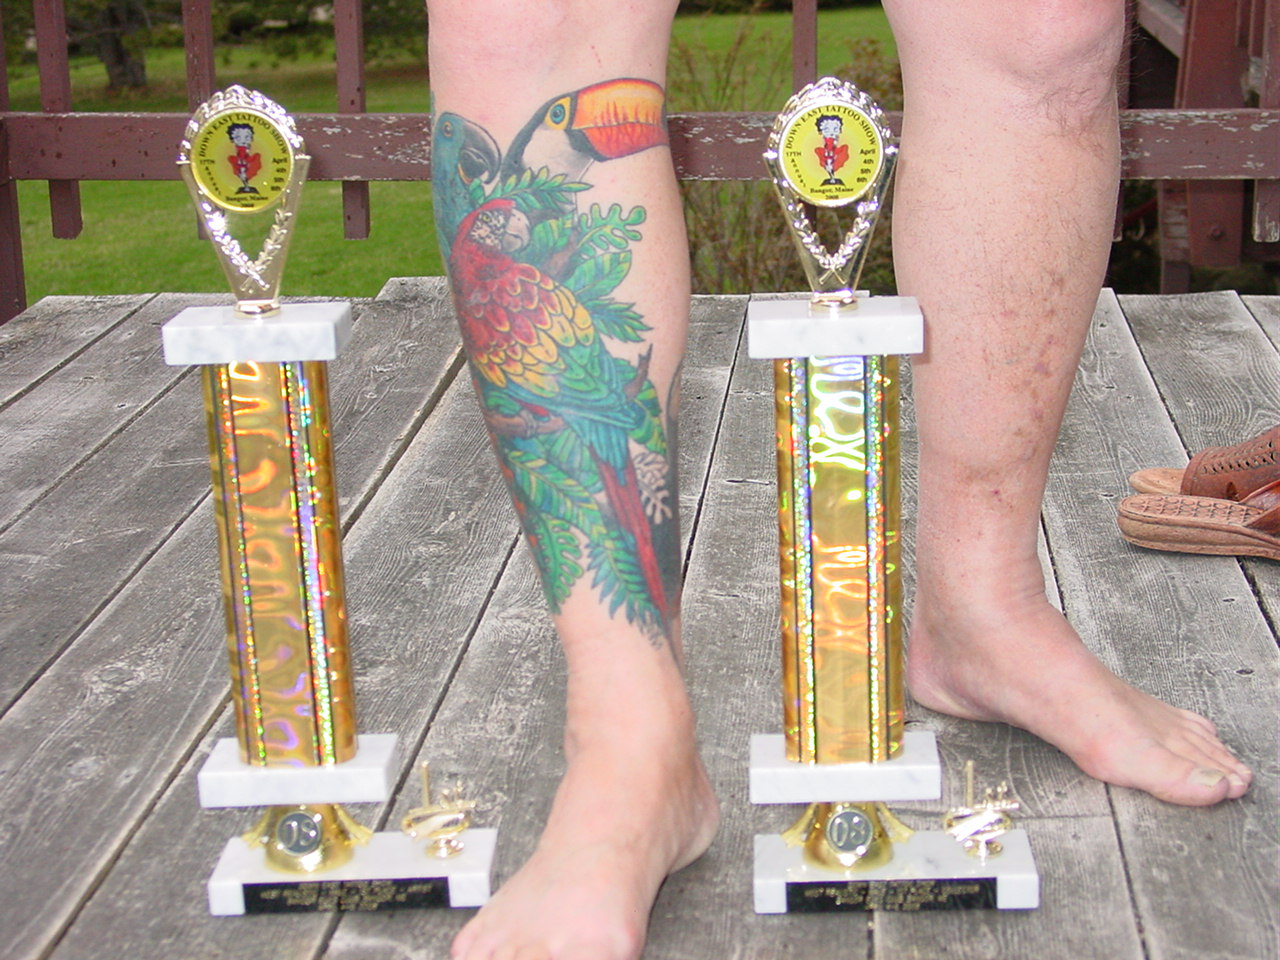 FIRST TATTOO SHOW 2 FIRST PLACES